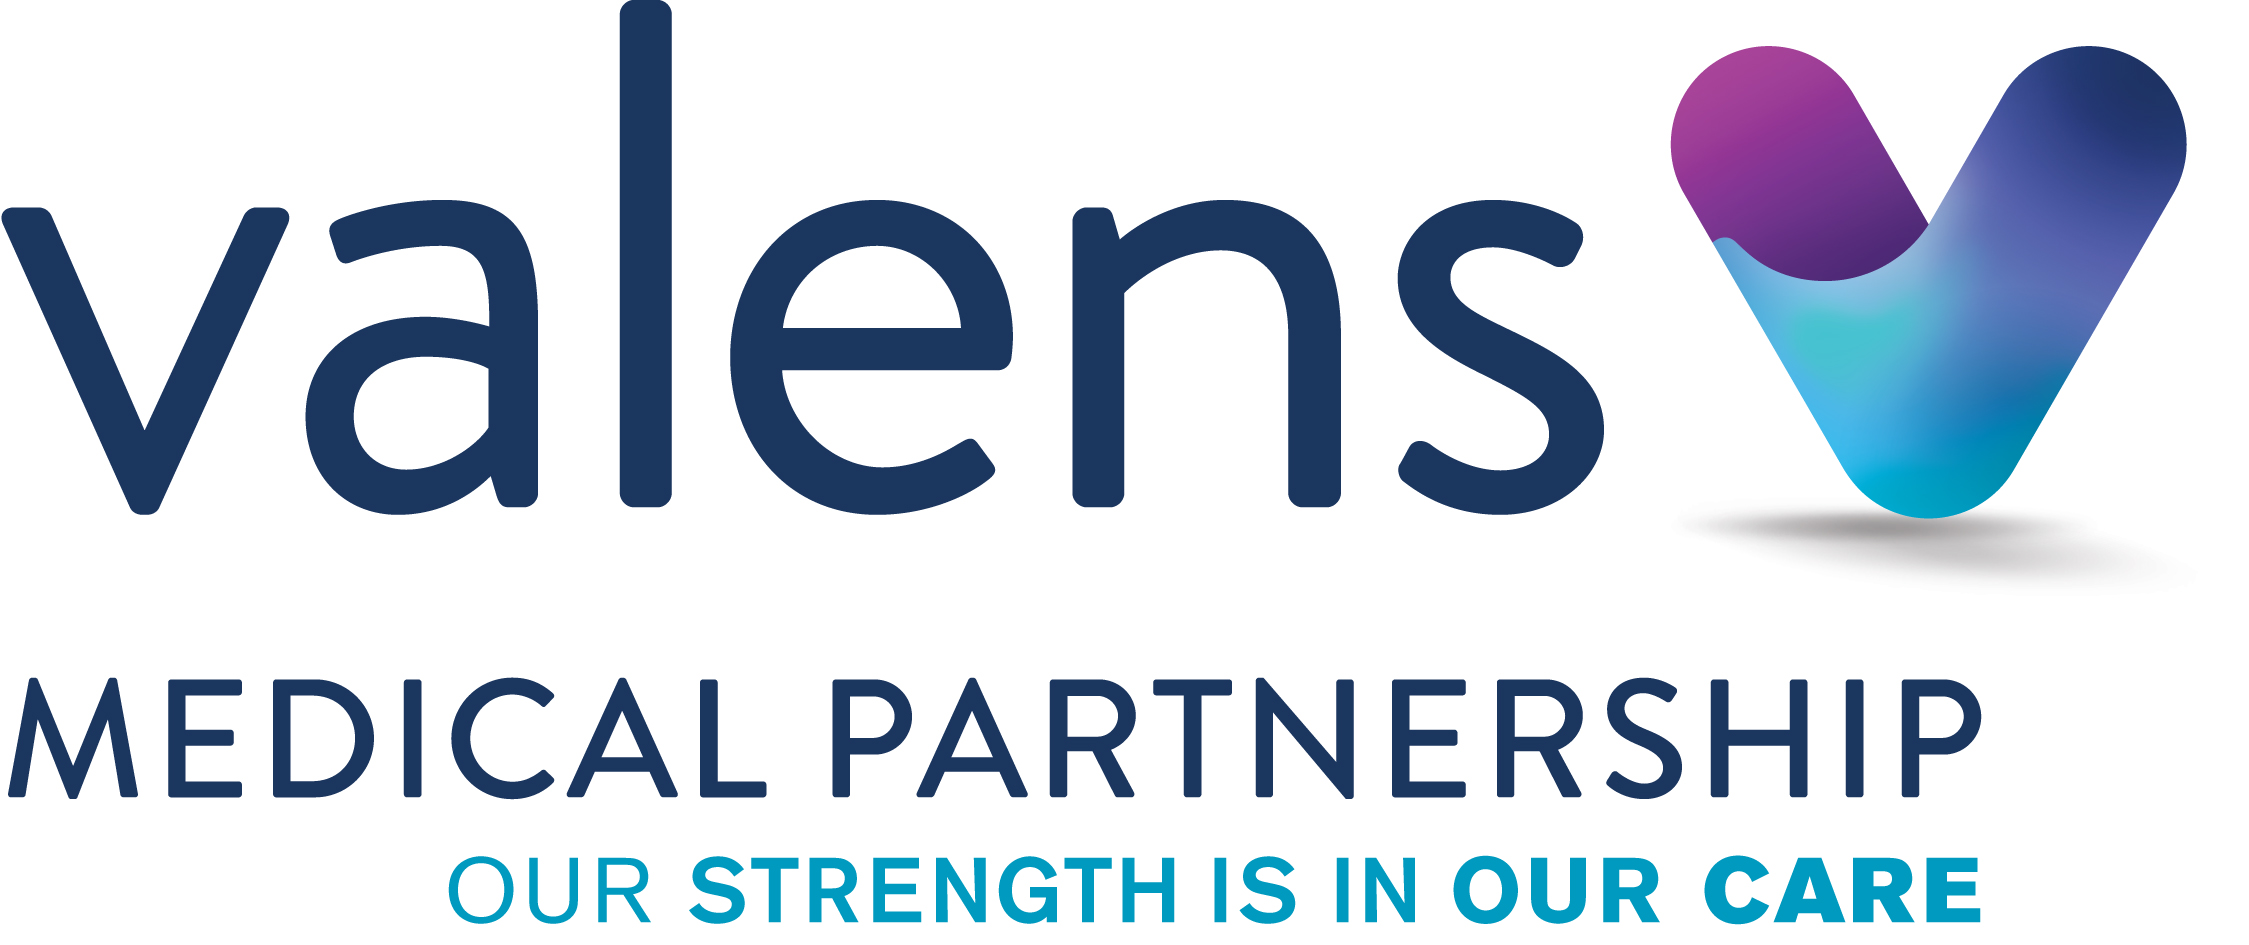 Valens Medical Partnership